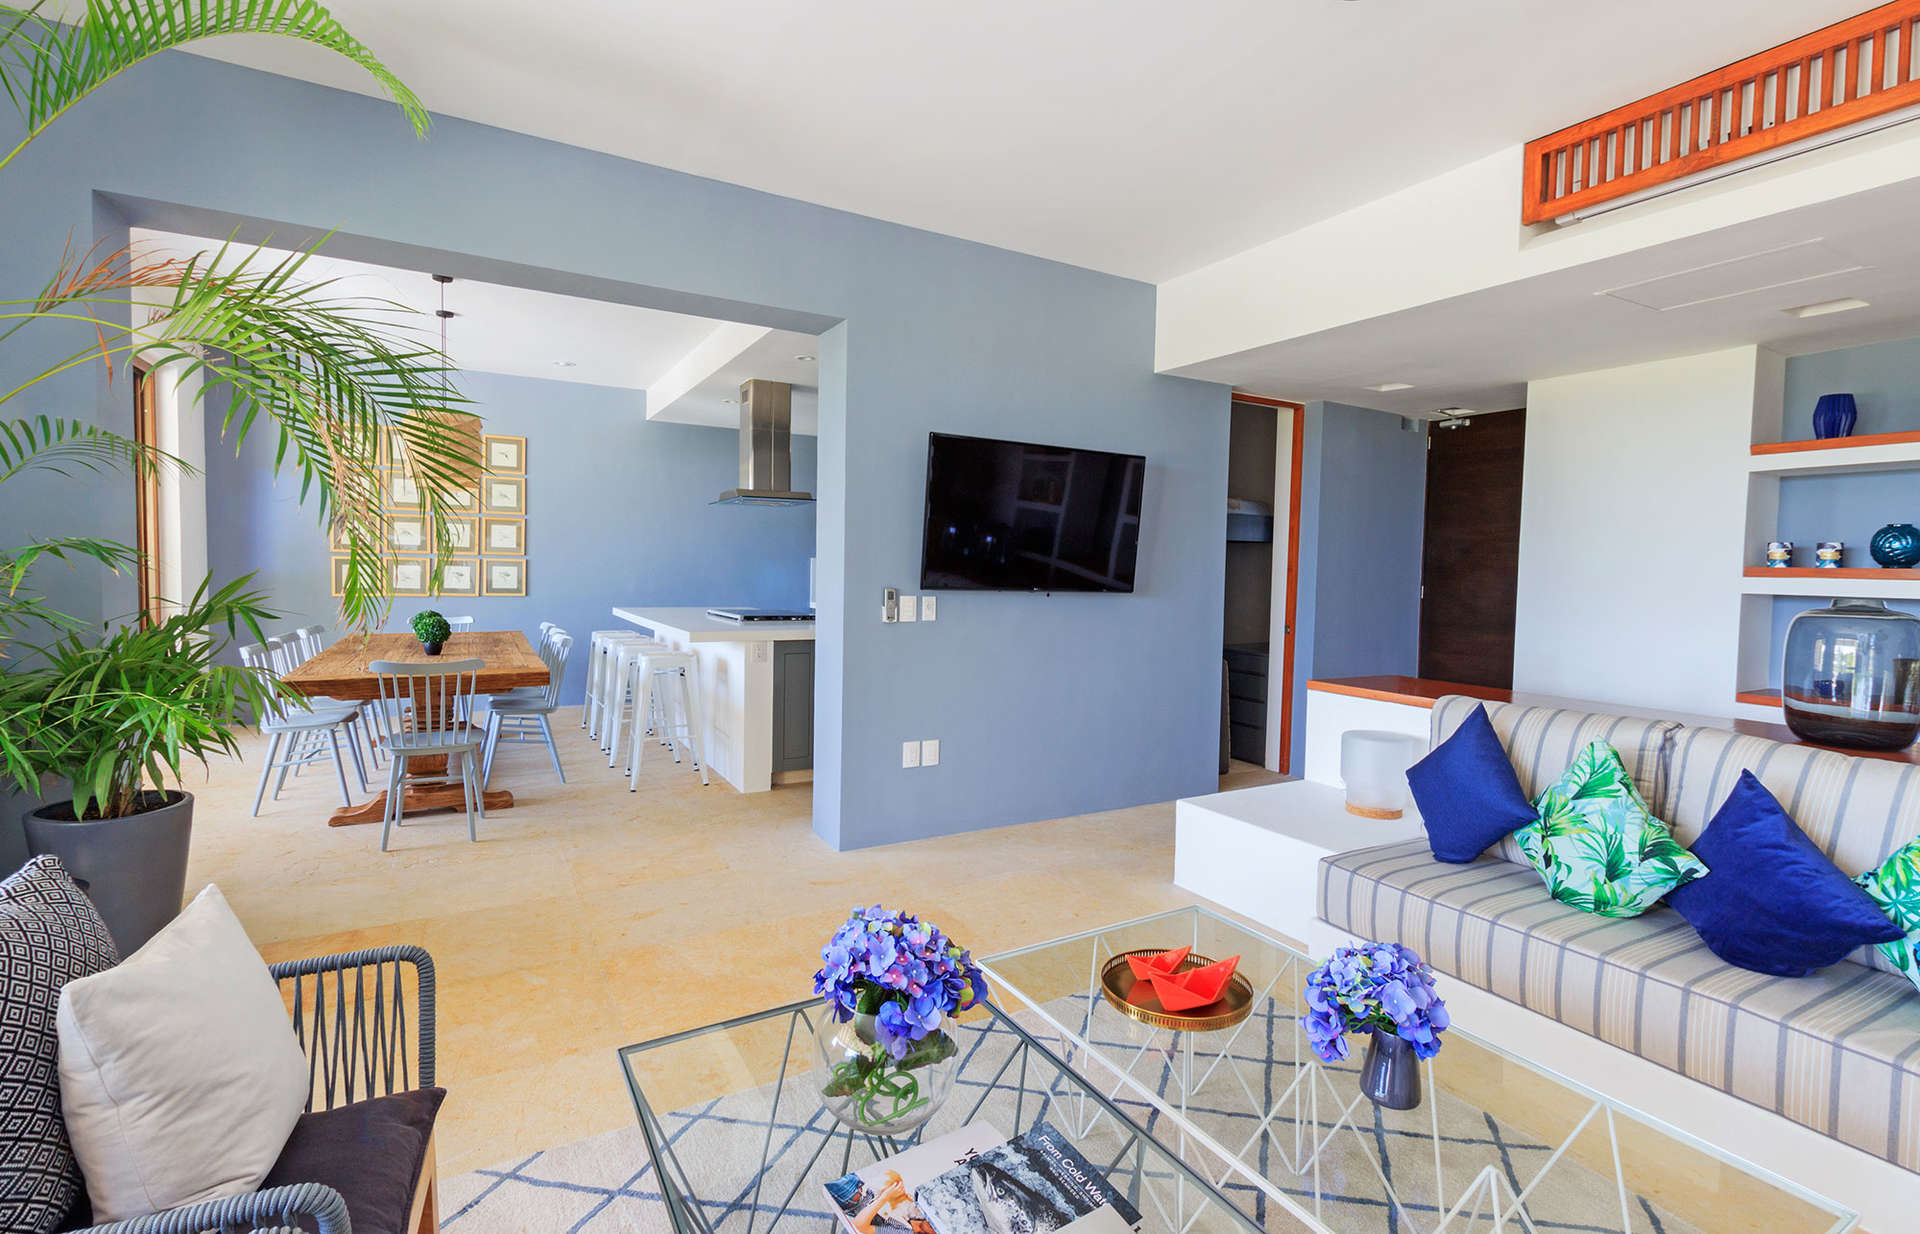 Luxury vacation rentals mexico - Punta mita - Las terrazas - No location 4 - Condo Terramar - Image 1/20